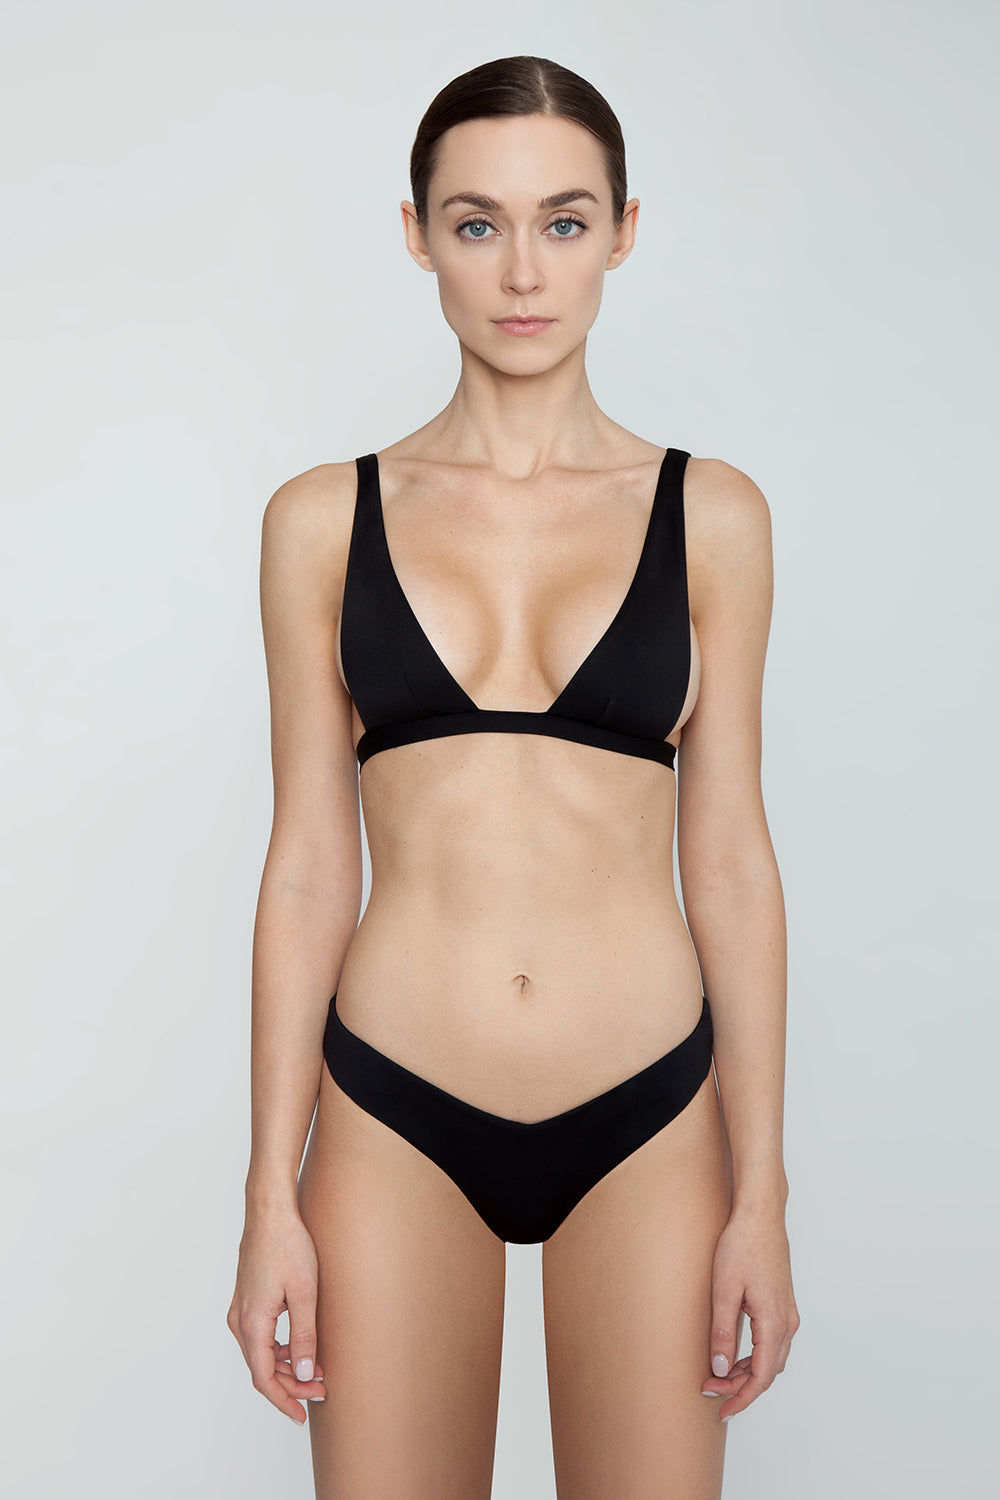 MONICA HANSEN BEACHWEAR Babe Watch Long Triangle Bikini Top - Black Bikini Top | Black| Monica Hansen Babe Watch Long Triangle Bikini Top - Black. Plunging U-neckline Long triangle top Small nickel colored metal clasp in back Double fabric on the inside instead of lining Italian fabric 85% Nylon 15% Elastane Manufactured in Italy Hand wash cold.  Dry Flat Front View